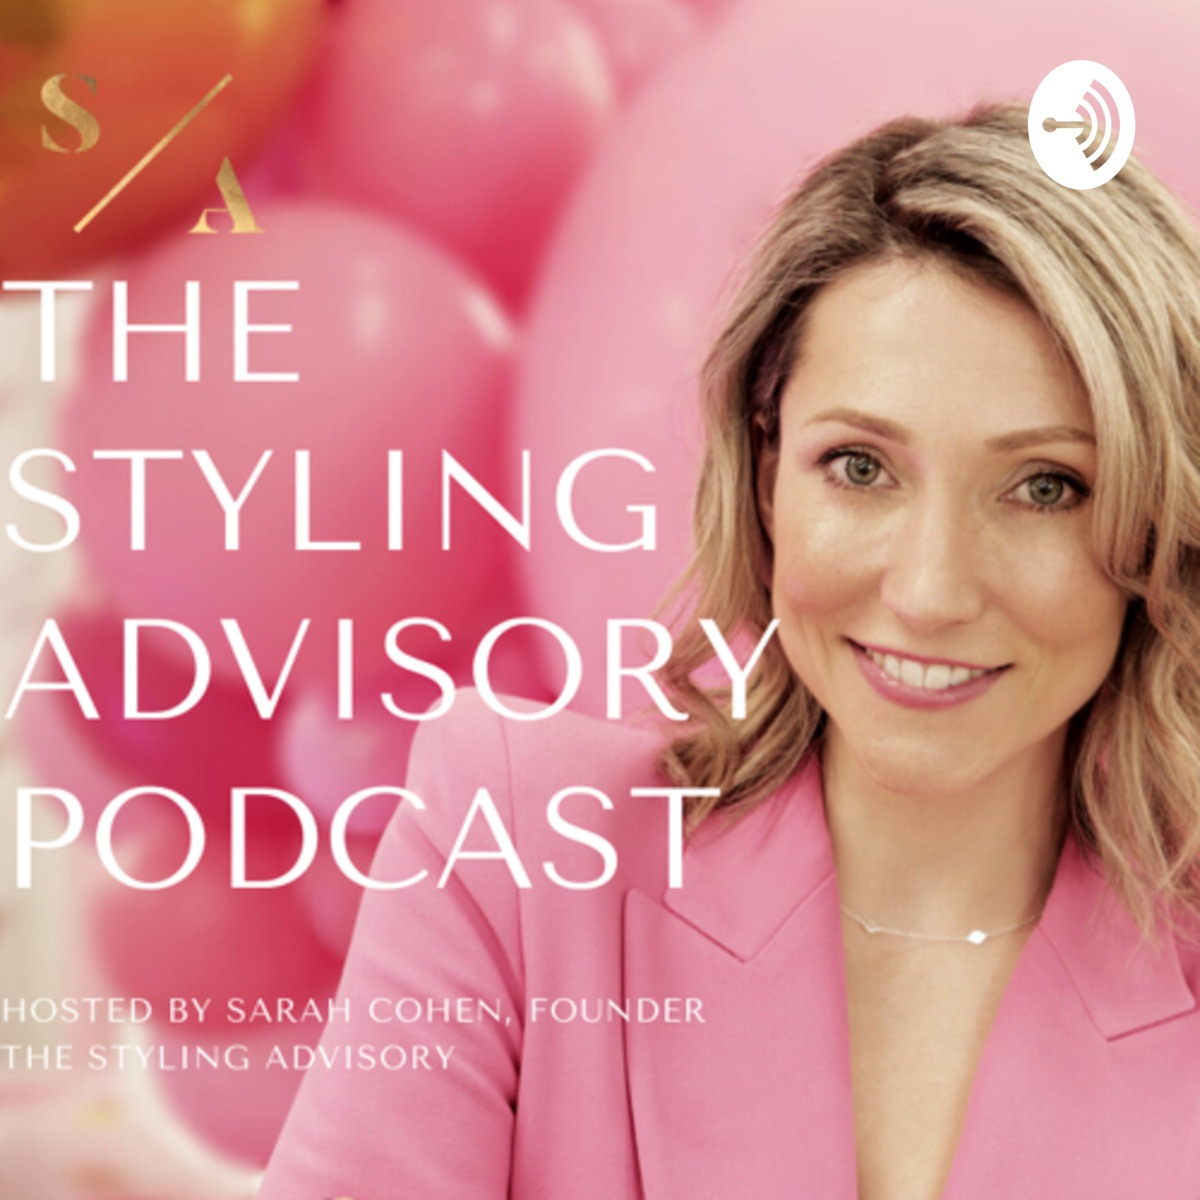 The Styling Advisory Podcast